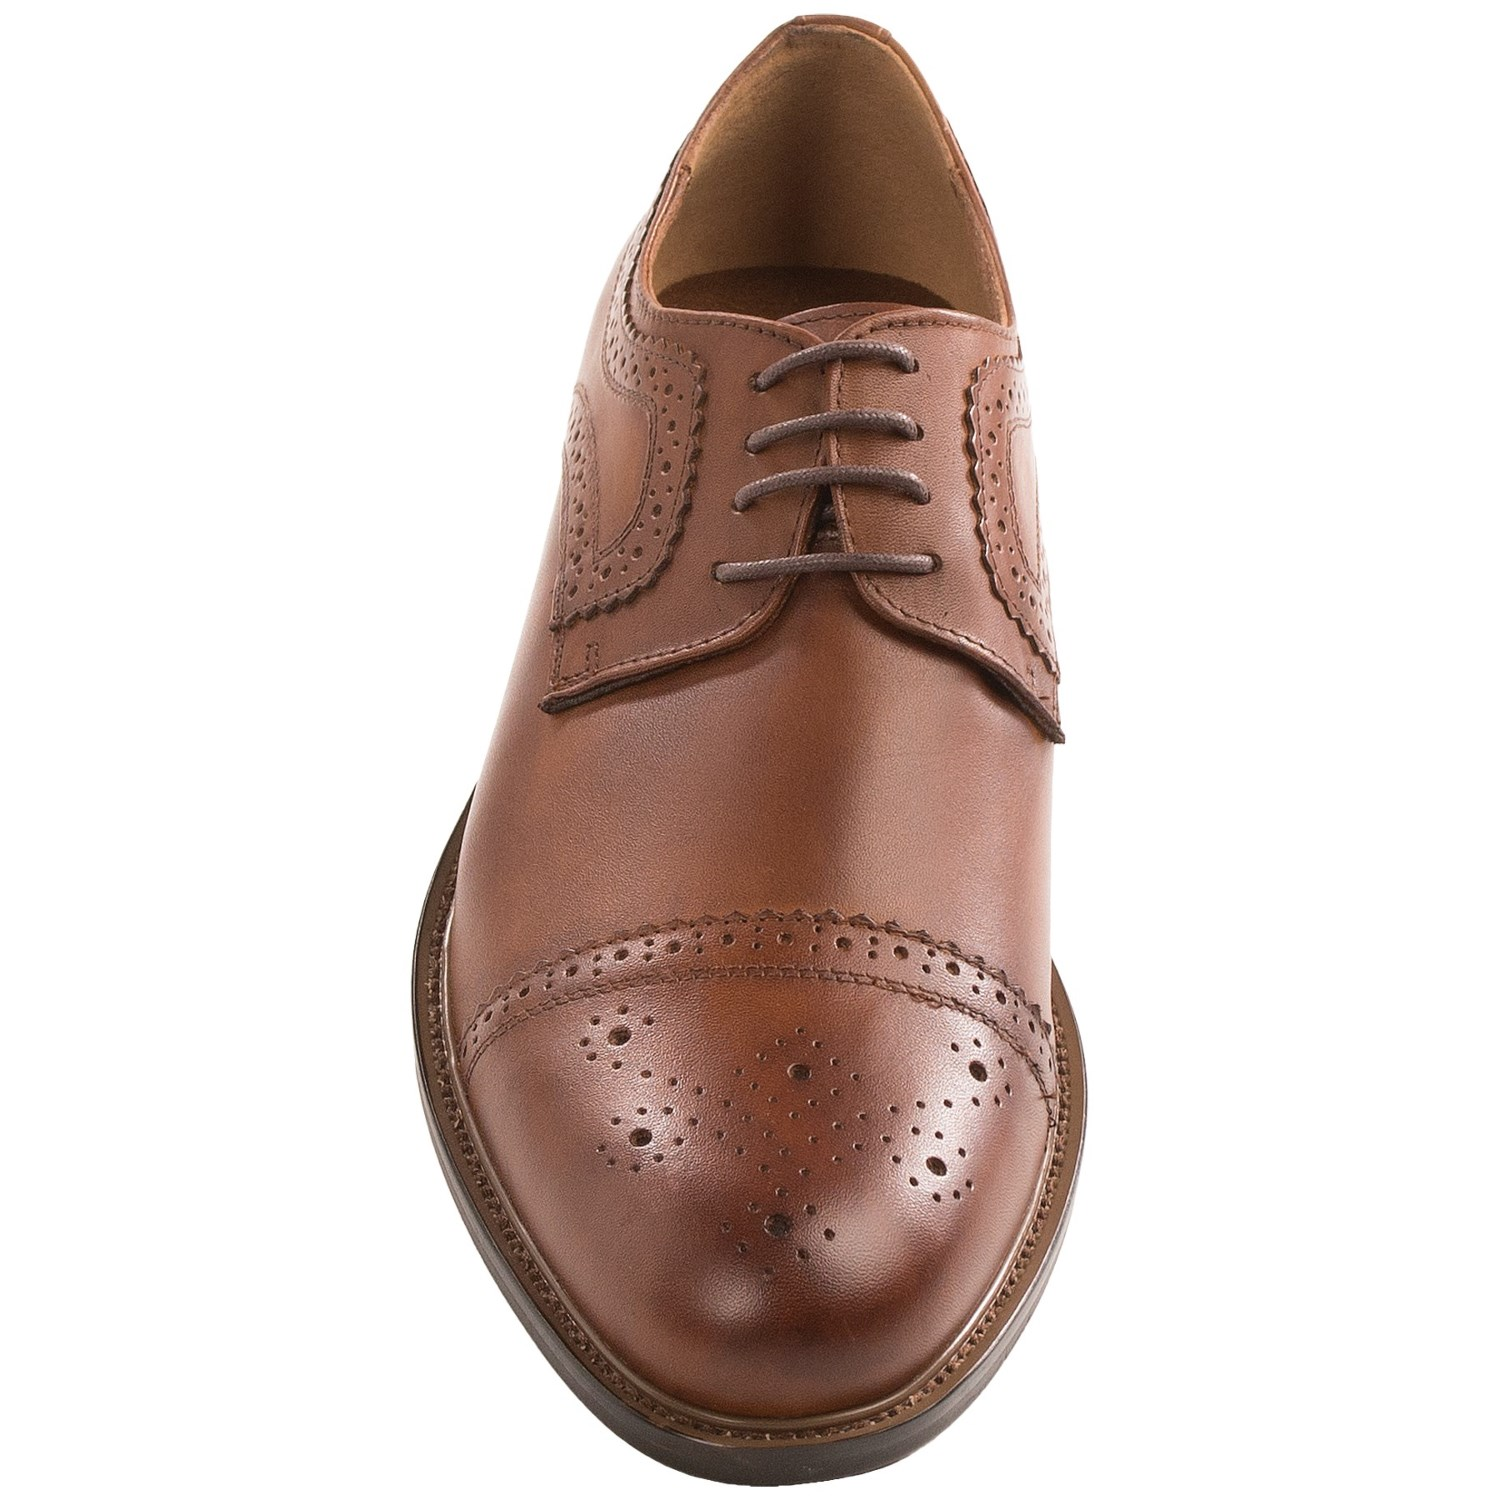 madden single men ★ steve madden fasto sneaker (men) @ shop reviews all mens sale, enjoy free shipping on all orders [steve madden fasto sneaker (men)] shop online for shoes, clothing, makeup, dresses and more from top.